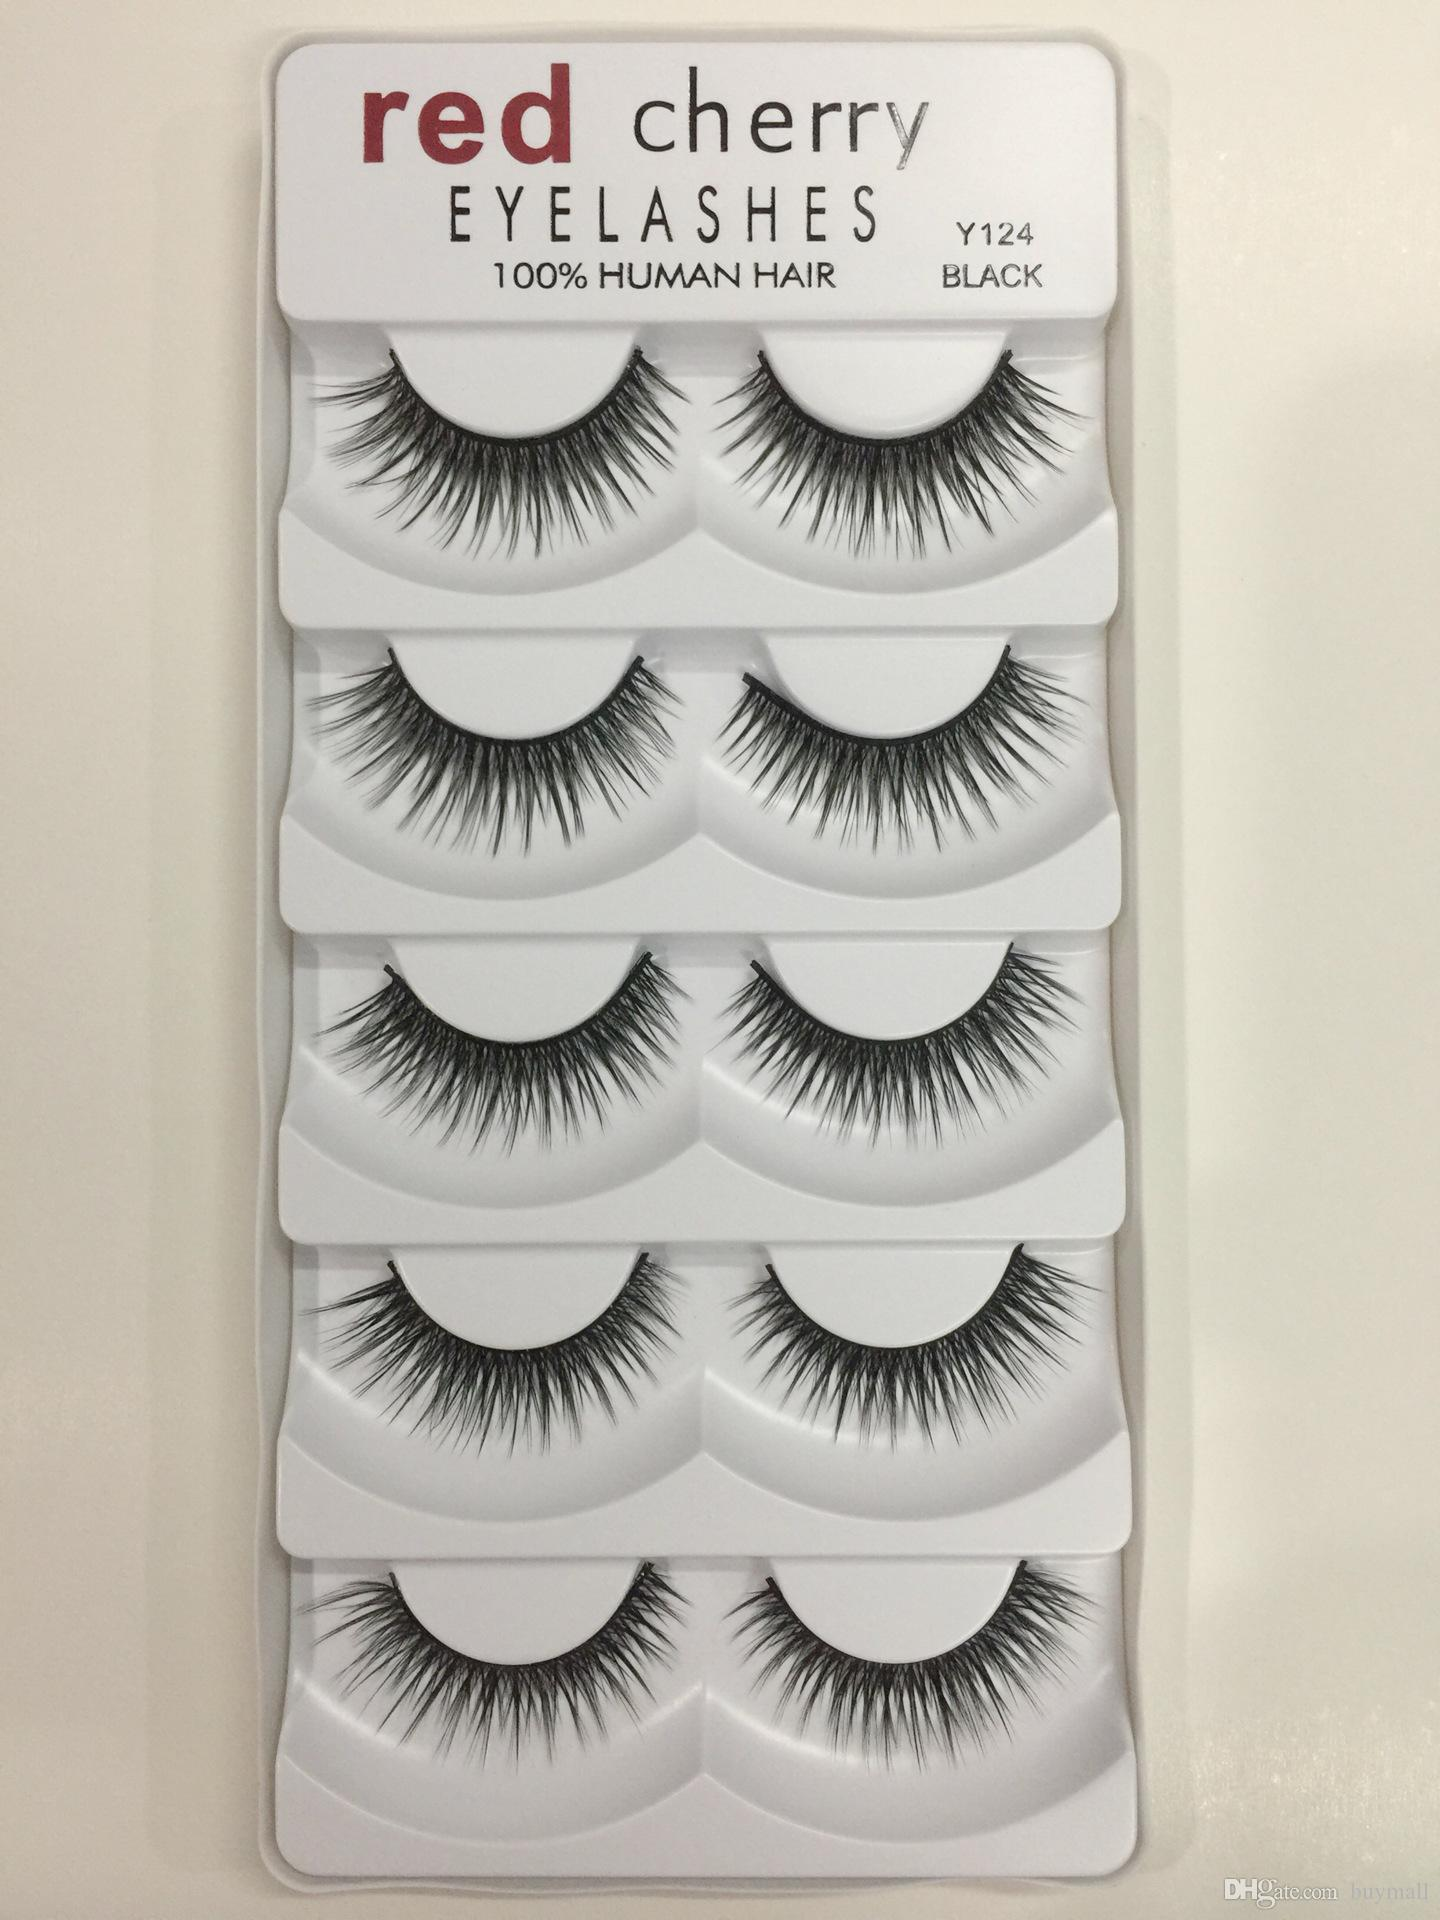 Red Cherry False Eyelashes 100% Human Hair each set Black color 8 styles available drop shipping Fake Lashes